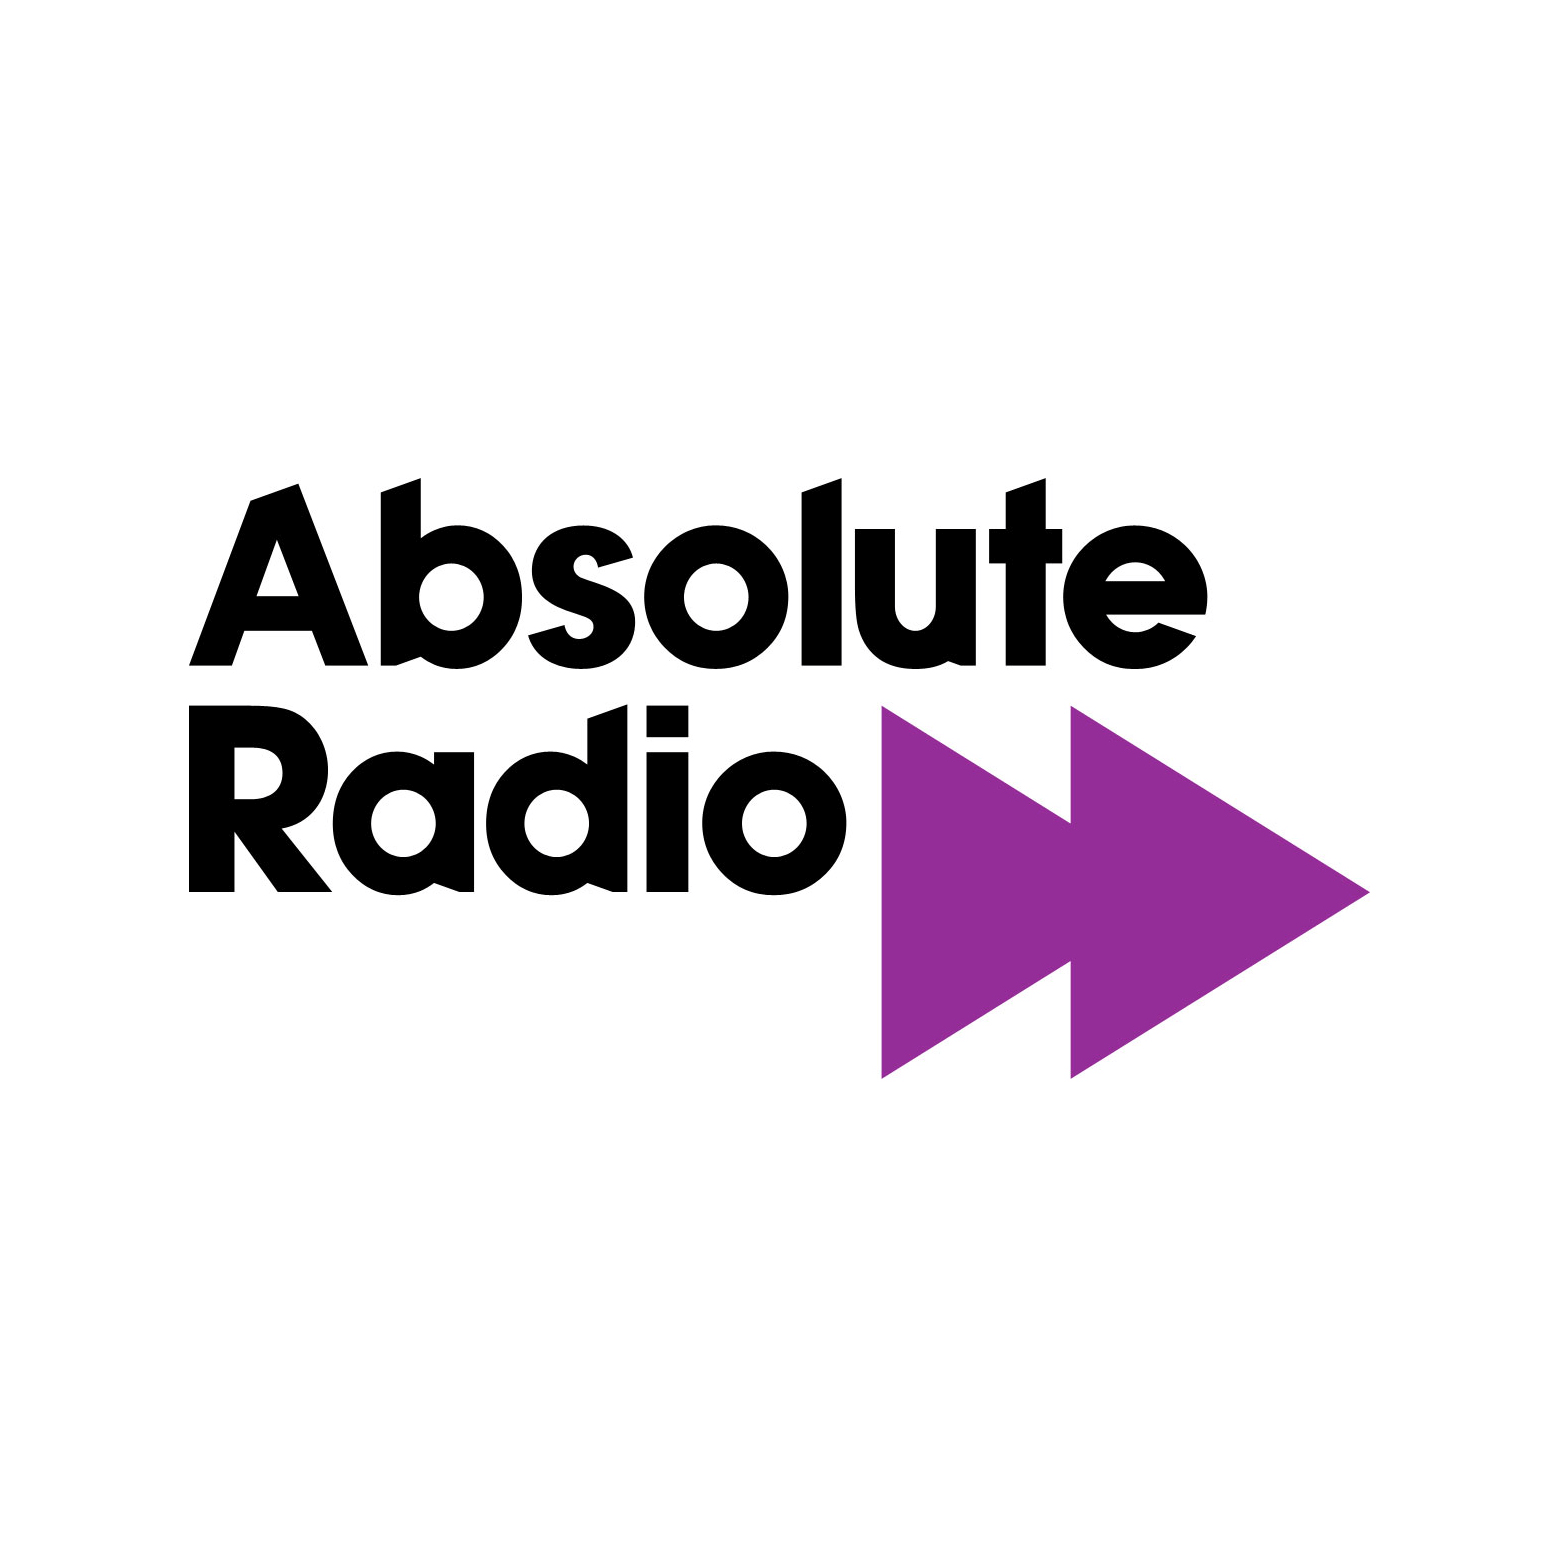 Absolute-Radio-logo-high-res.png